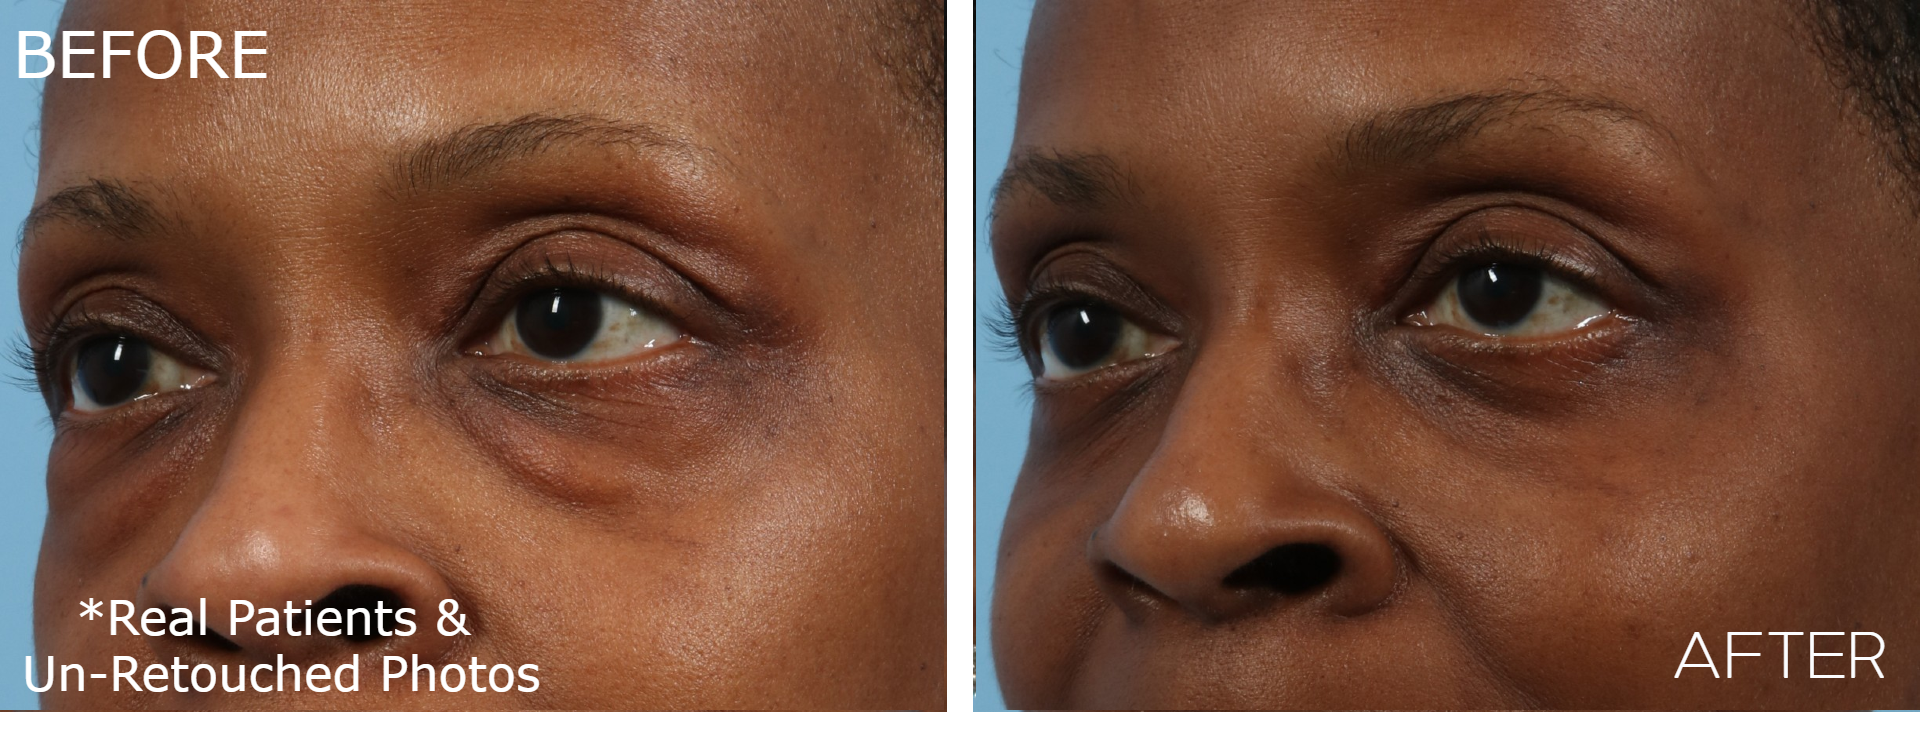 Case-1036-Blepharoplasty-Oblique-Before-and-After